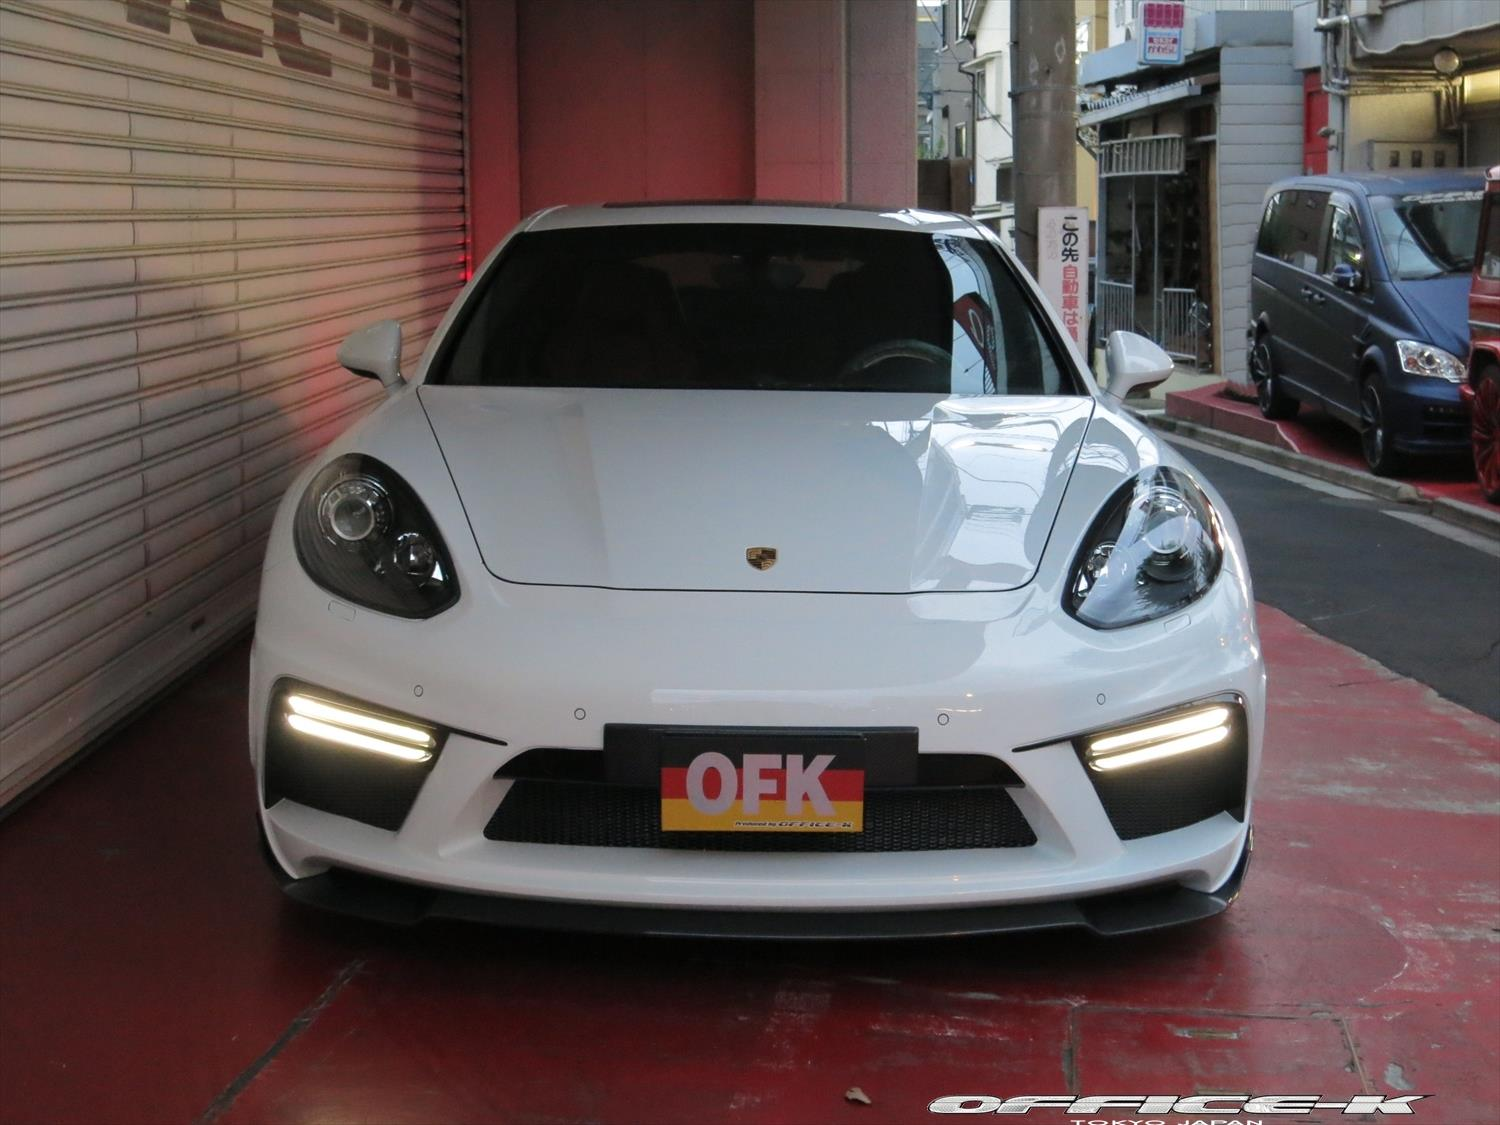 new porsche panamera gts customized by office k in japan - Porsche Panamera Gts 2014